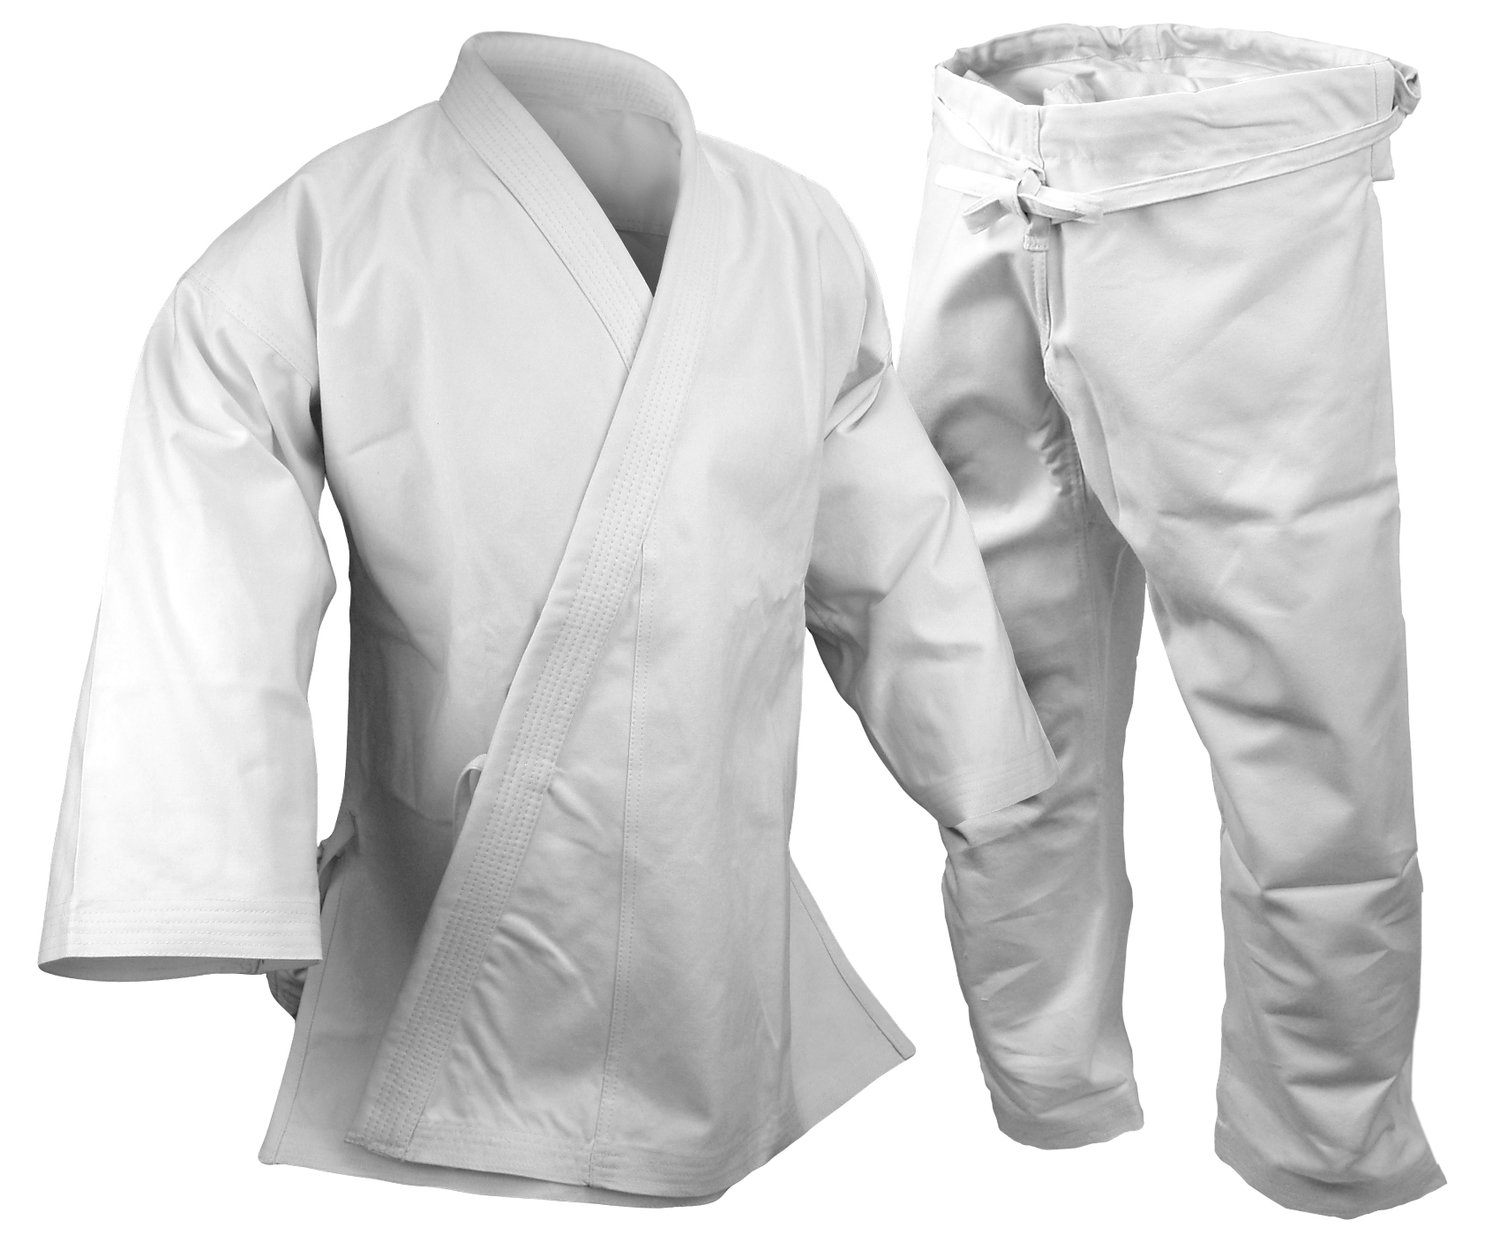 Karate Uniform, 14 oz., White